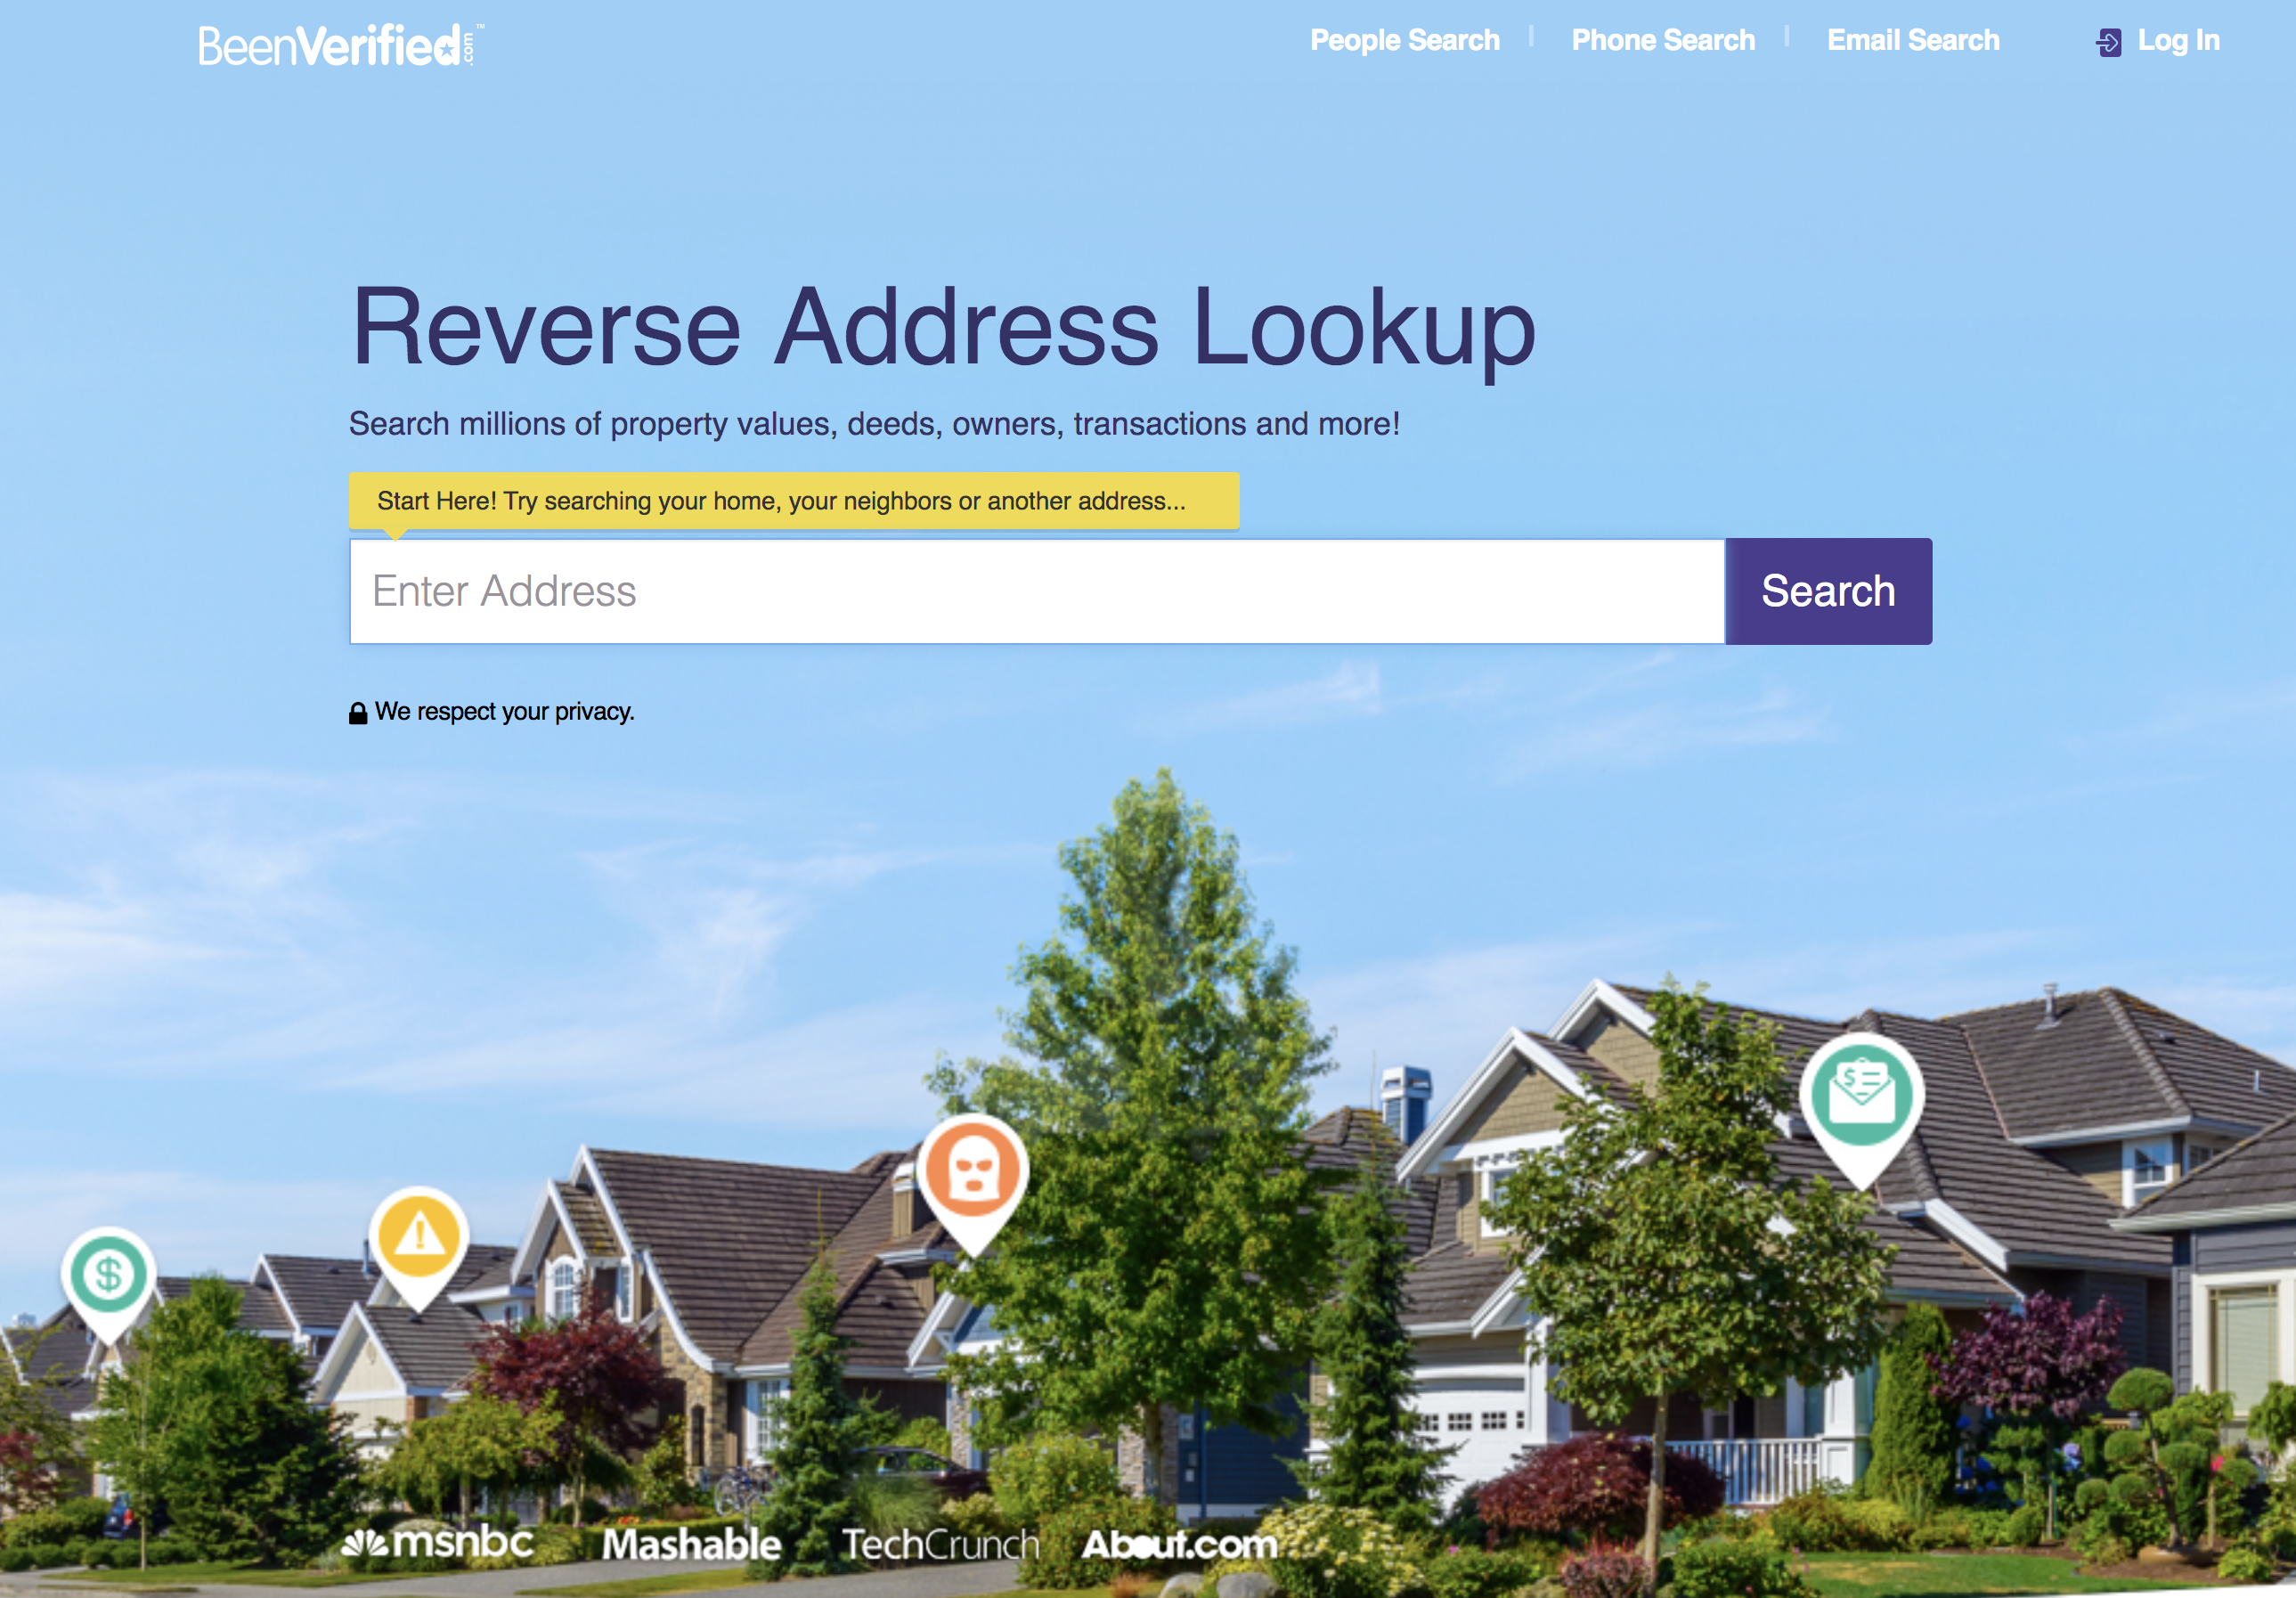 beenverified reverse address lookup